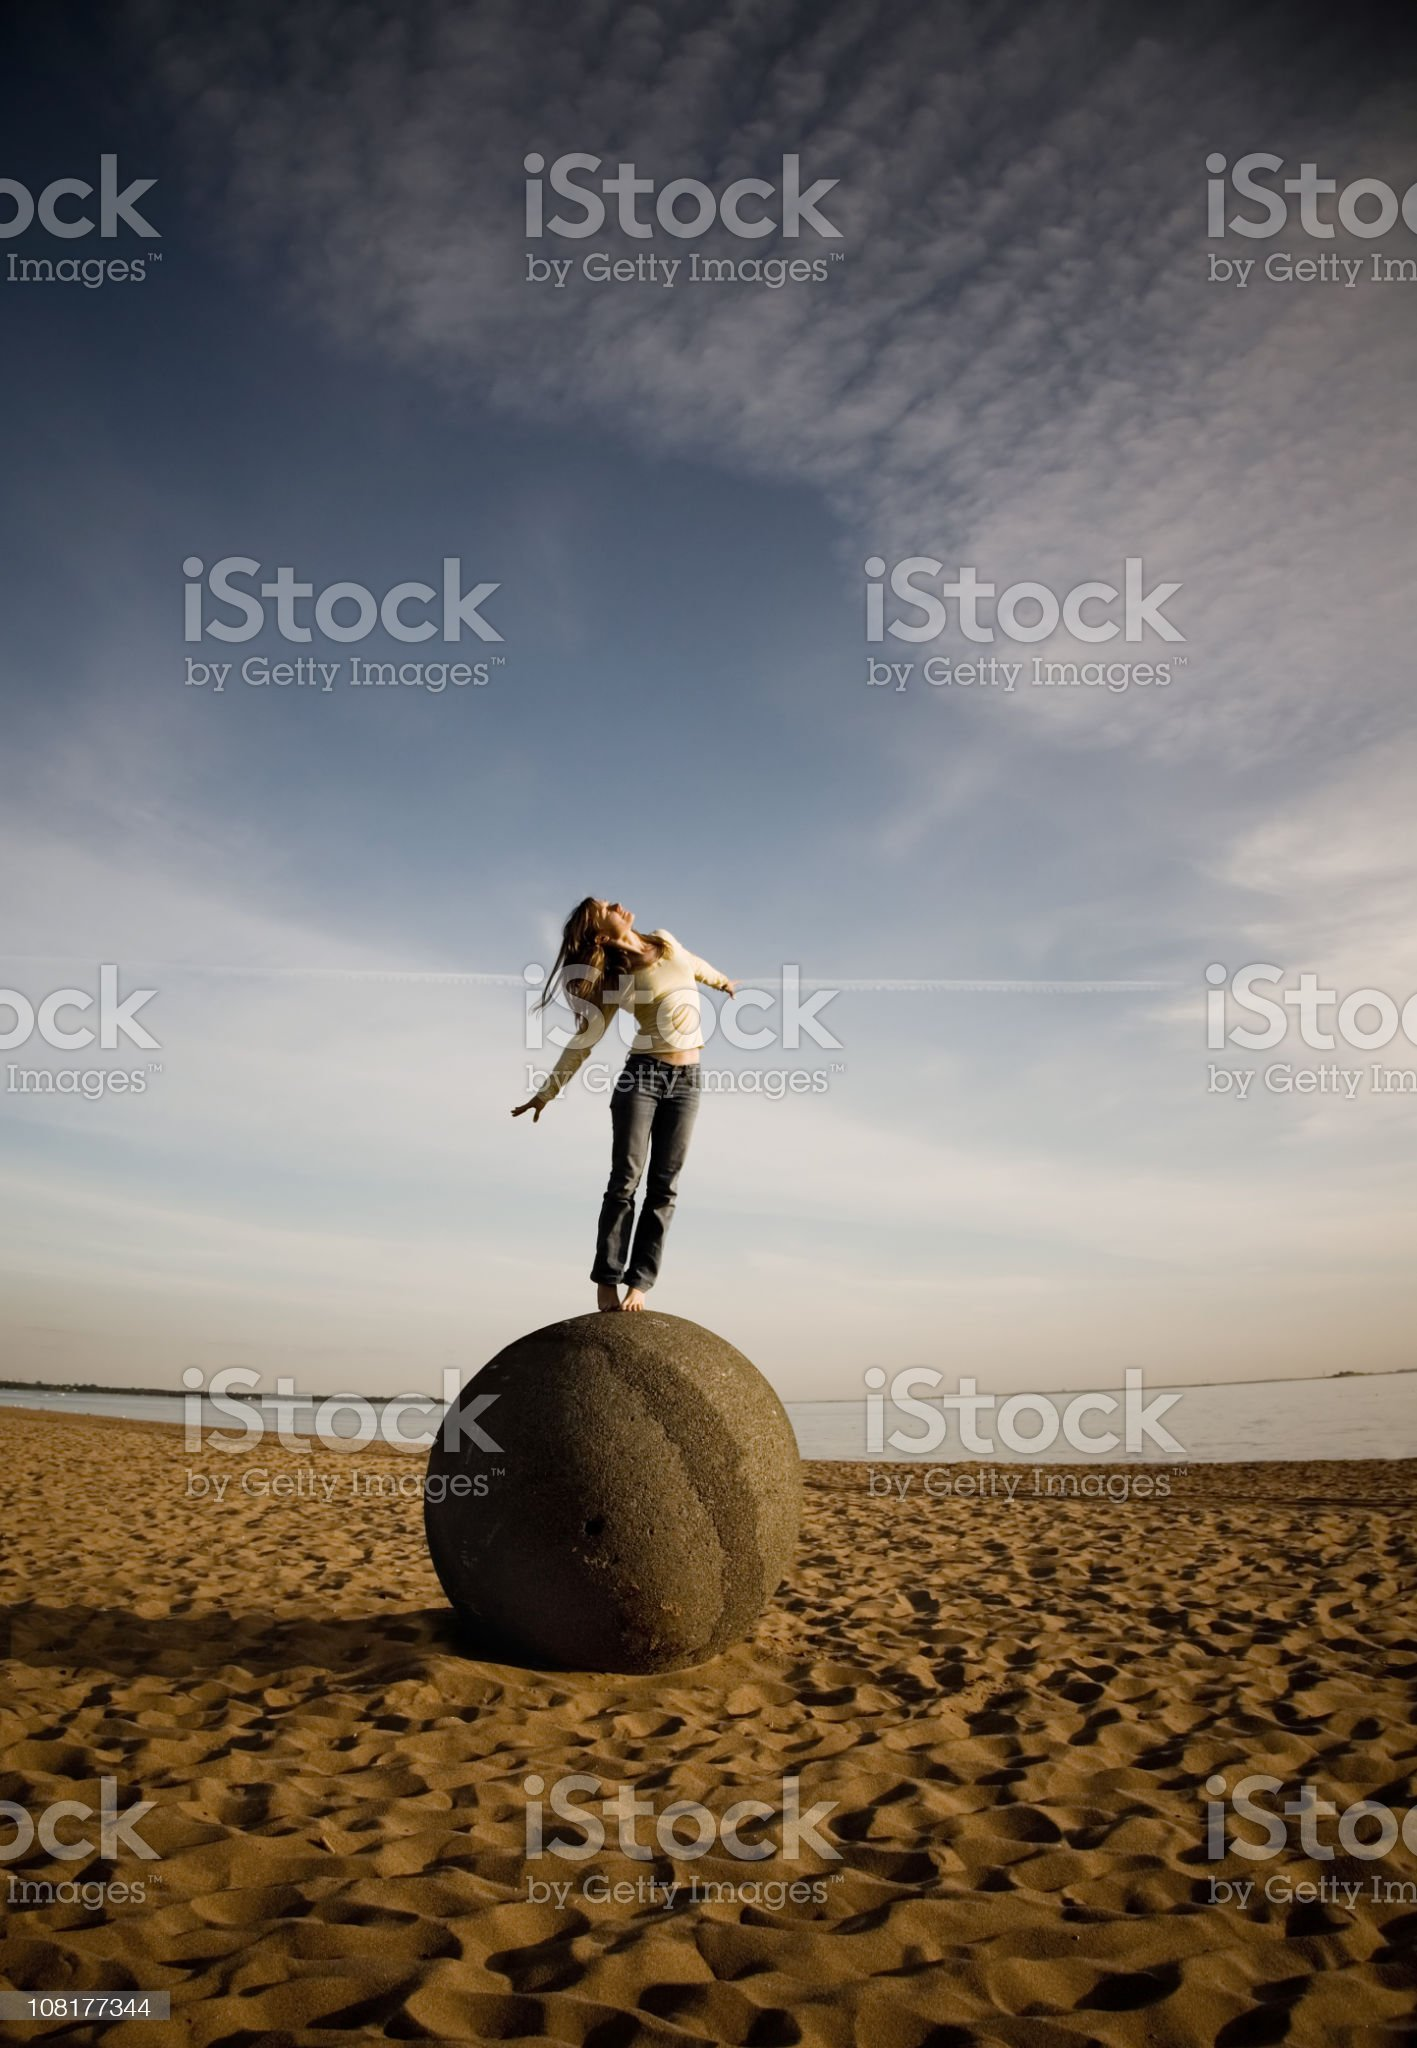 Woman Standing on Stone Ball royalty-free stock photo